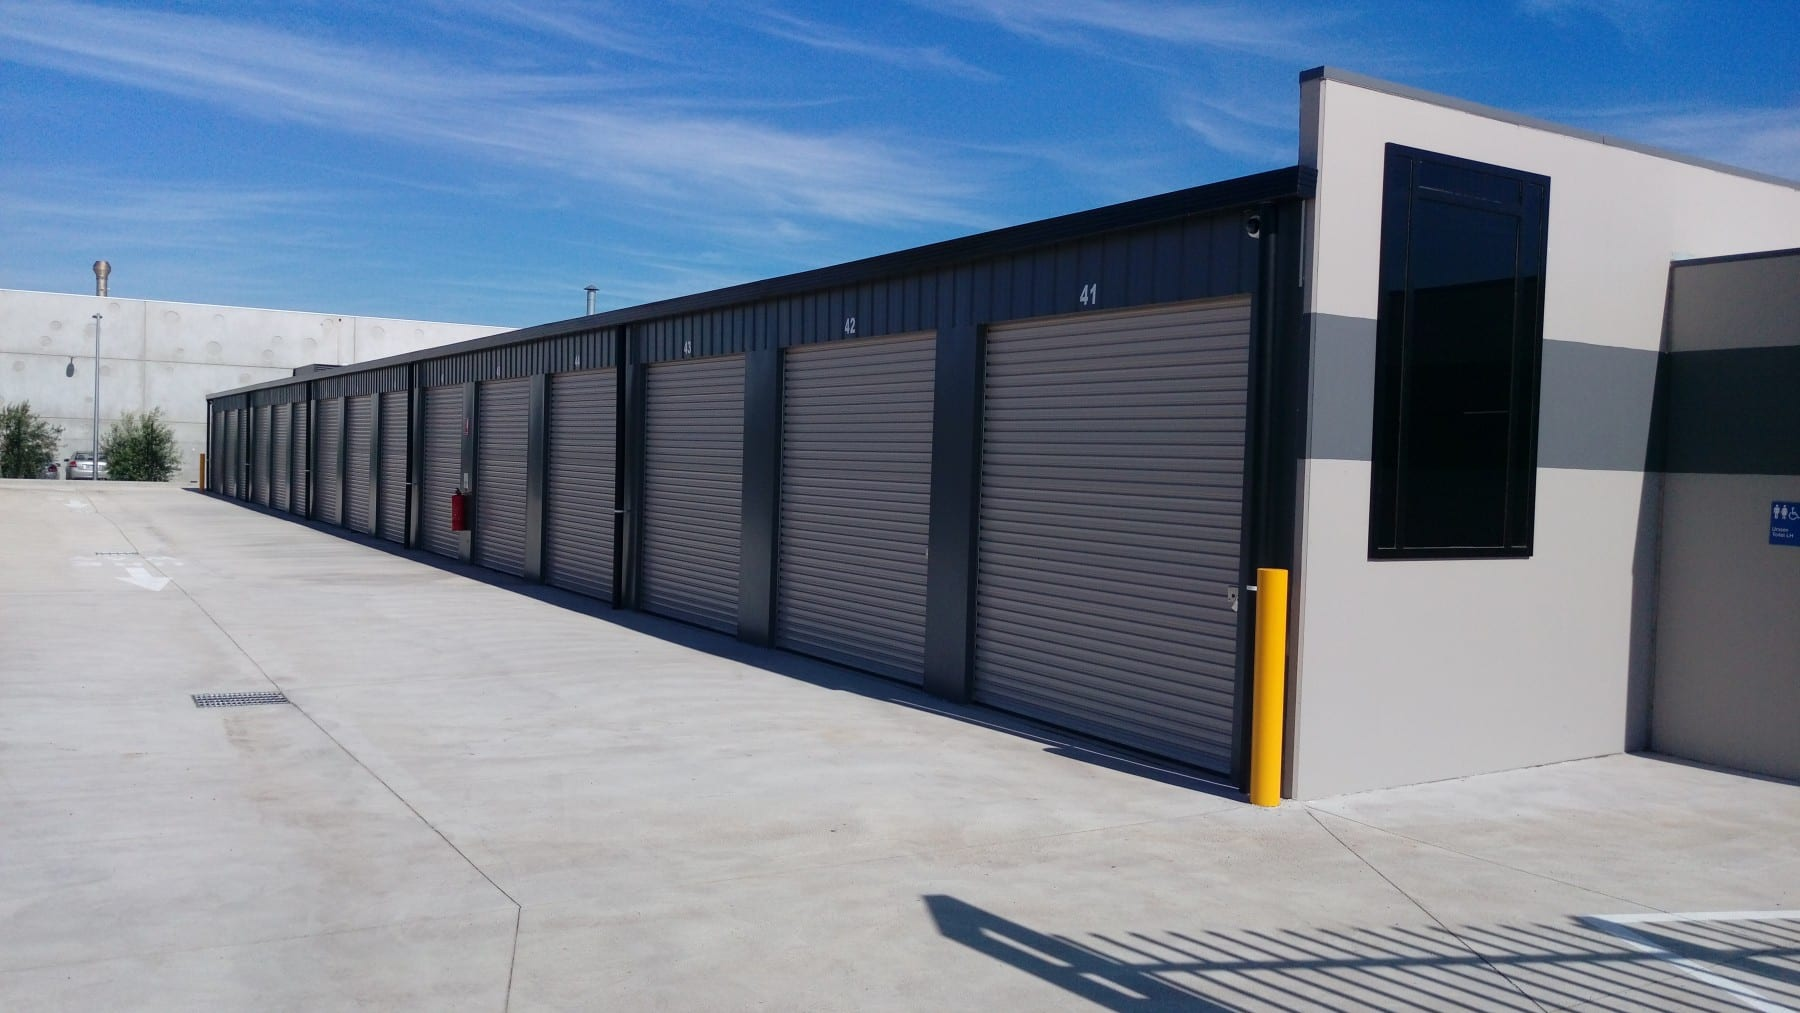 Deer park Storage | Storage Quest Personal, Business, and Vehicle Storage Solutions